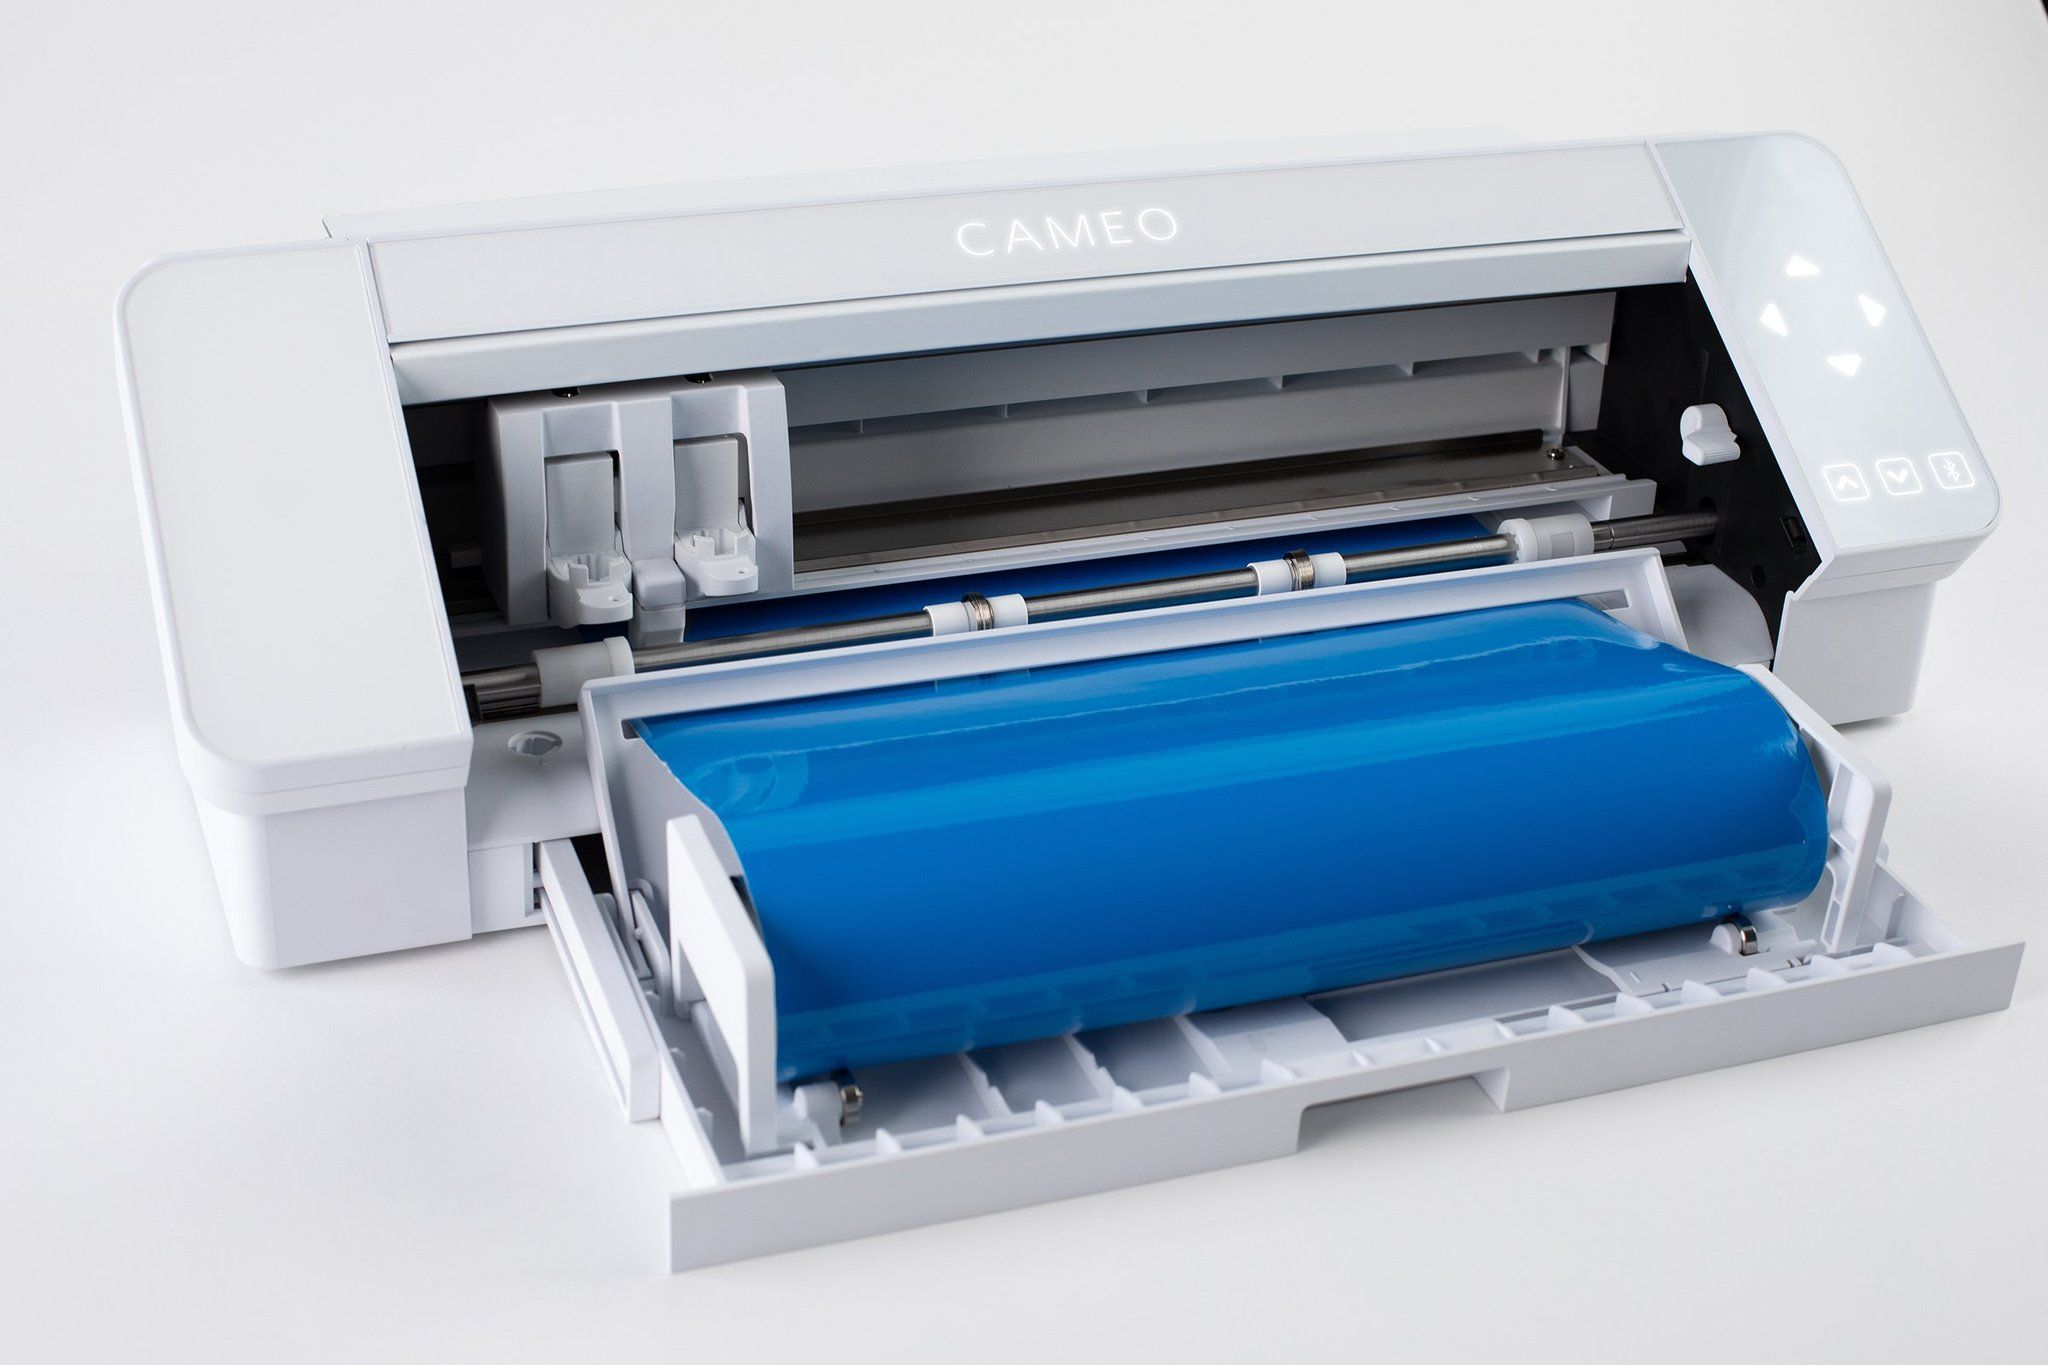 Silhouette White Cameo 4 W Updated Autoblade 3x Speed Roll Feeder Silhouette Cameo Cameo Hot Pink Kitchen